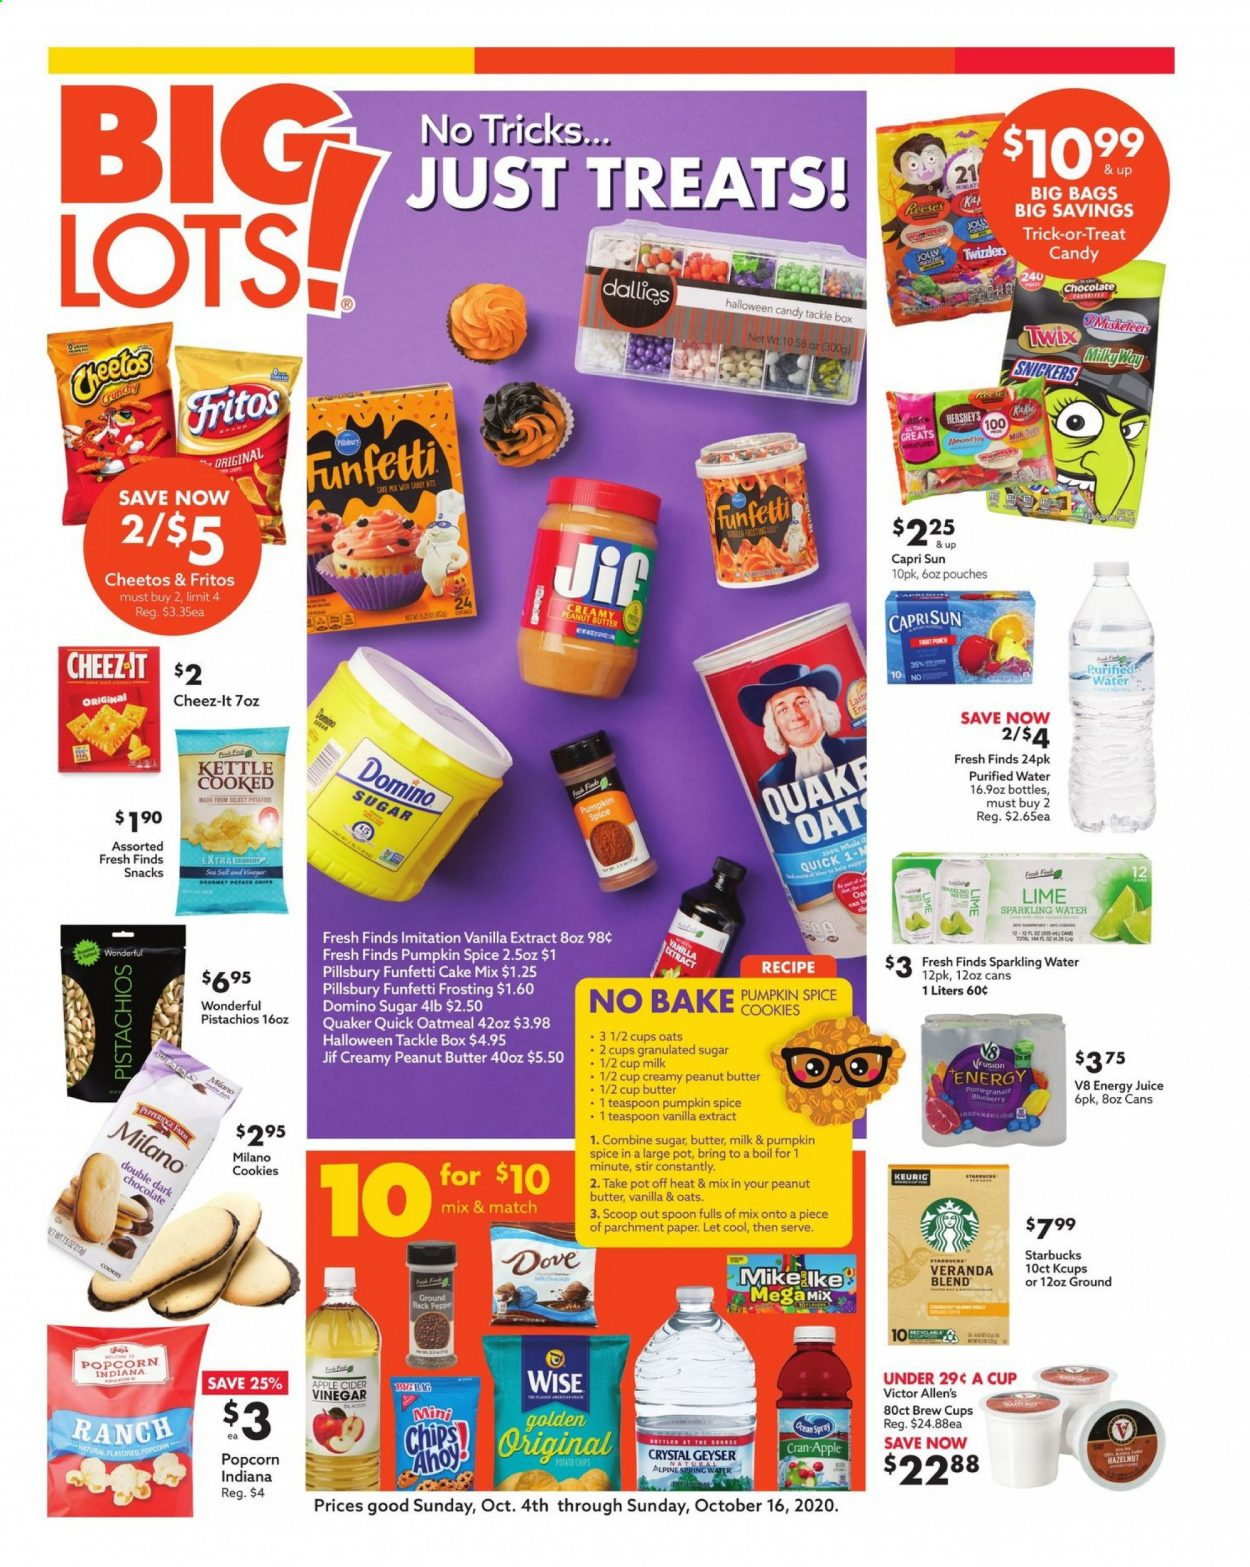 Big Lots Flyer - 10.04.2020 - 10.16.2020 - Sales products - cake mix, Pillsbury, Quaker, Reese's, Hershey's, cookies, chocolate, candy, Milky Way, Snickers, Twix, dark chocolate, potato chips, Cheetos, chips, snack, popcorn, Cheez-It, frosting, granulated sugar, sugar, oatmeal, oats, vanilla extract, Fritos, apple cider vinegar, peanut butter, Jif, almonds, pistachios, Capri Sun, juice, spring water, sparkling water, purified water, Starbucks, Keurig, Dove, Joy, spoon, pot, teaspoon, water, tackle box. Page 1.